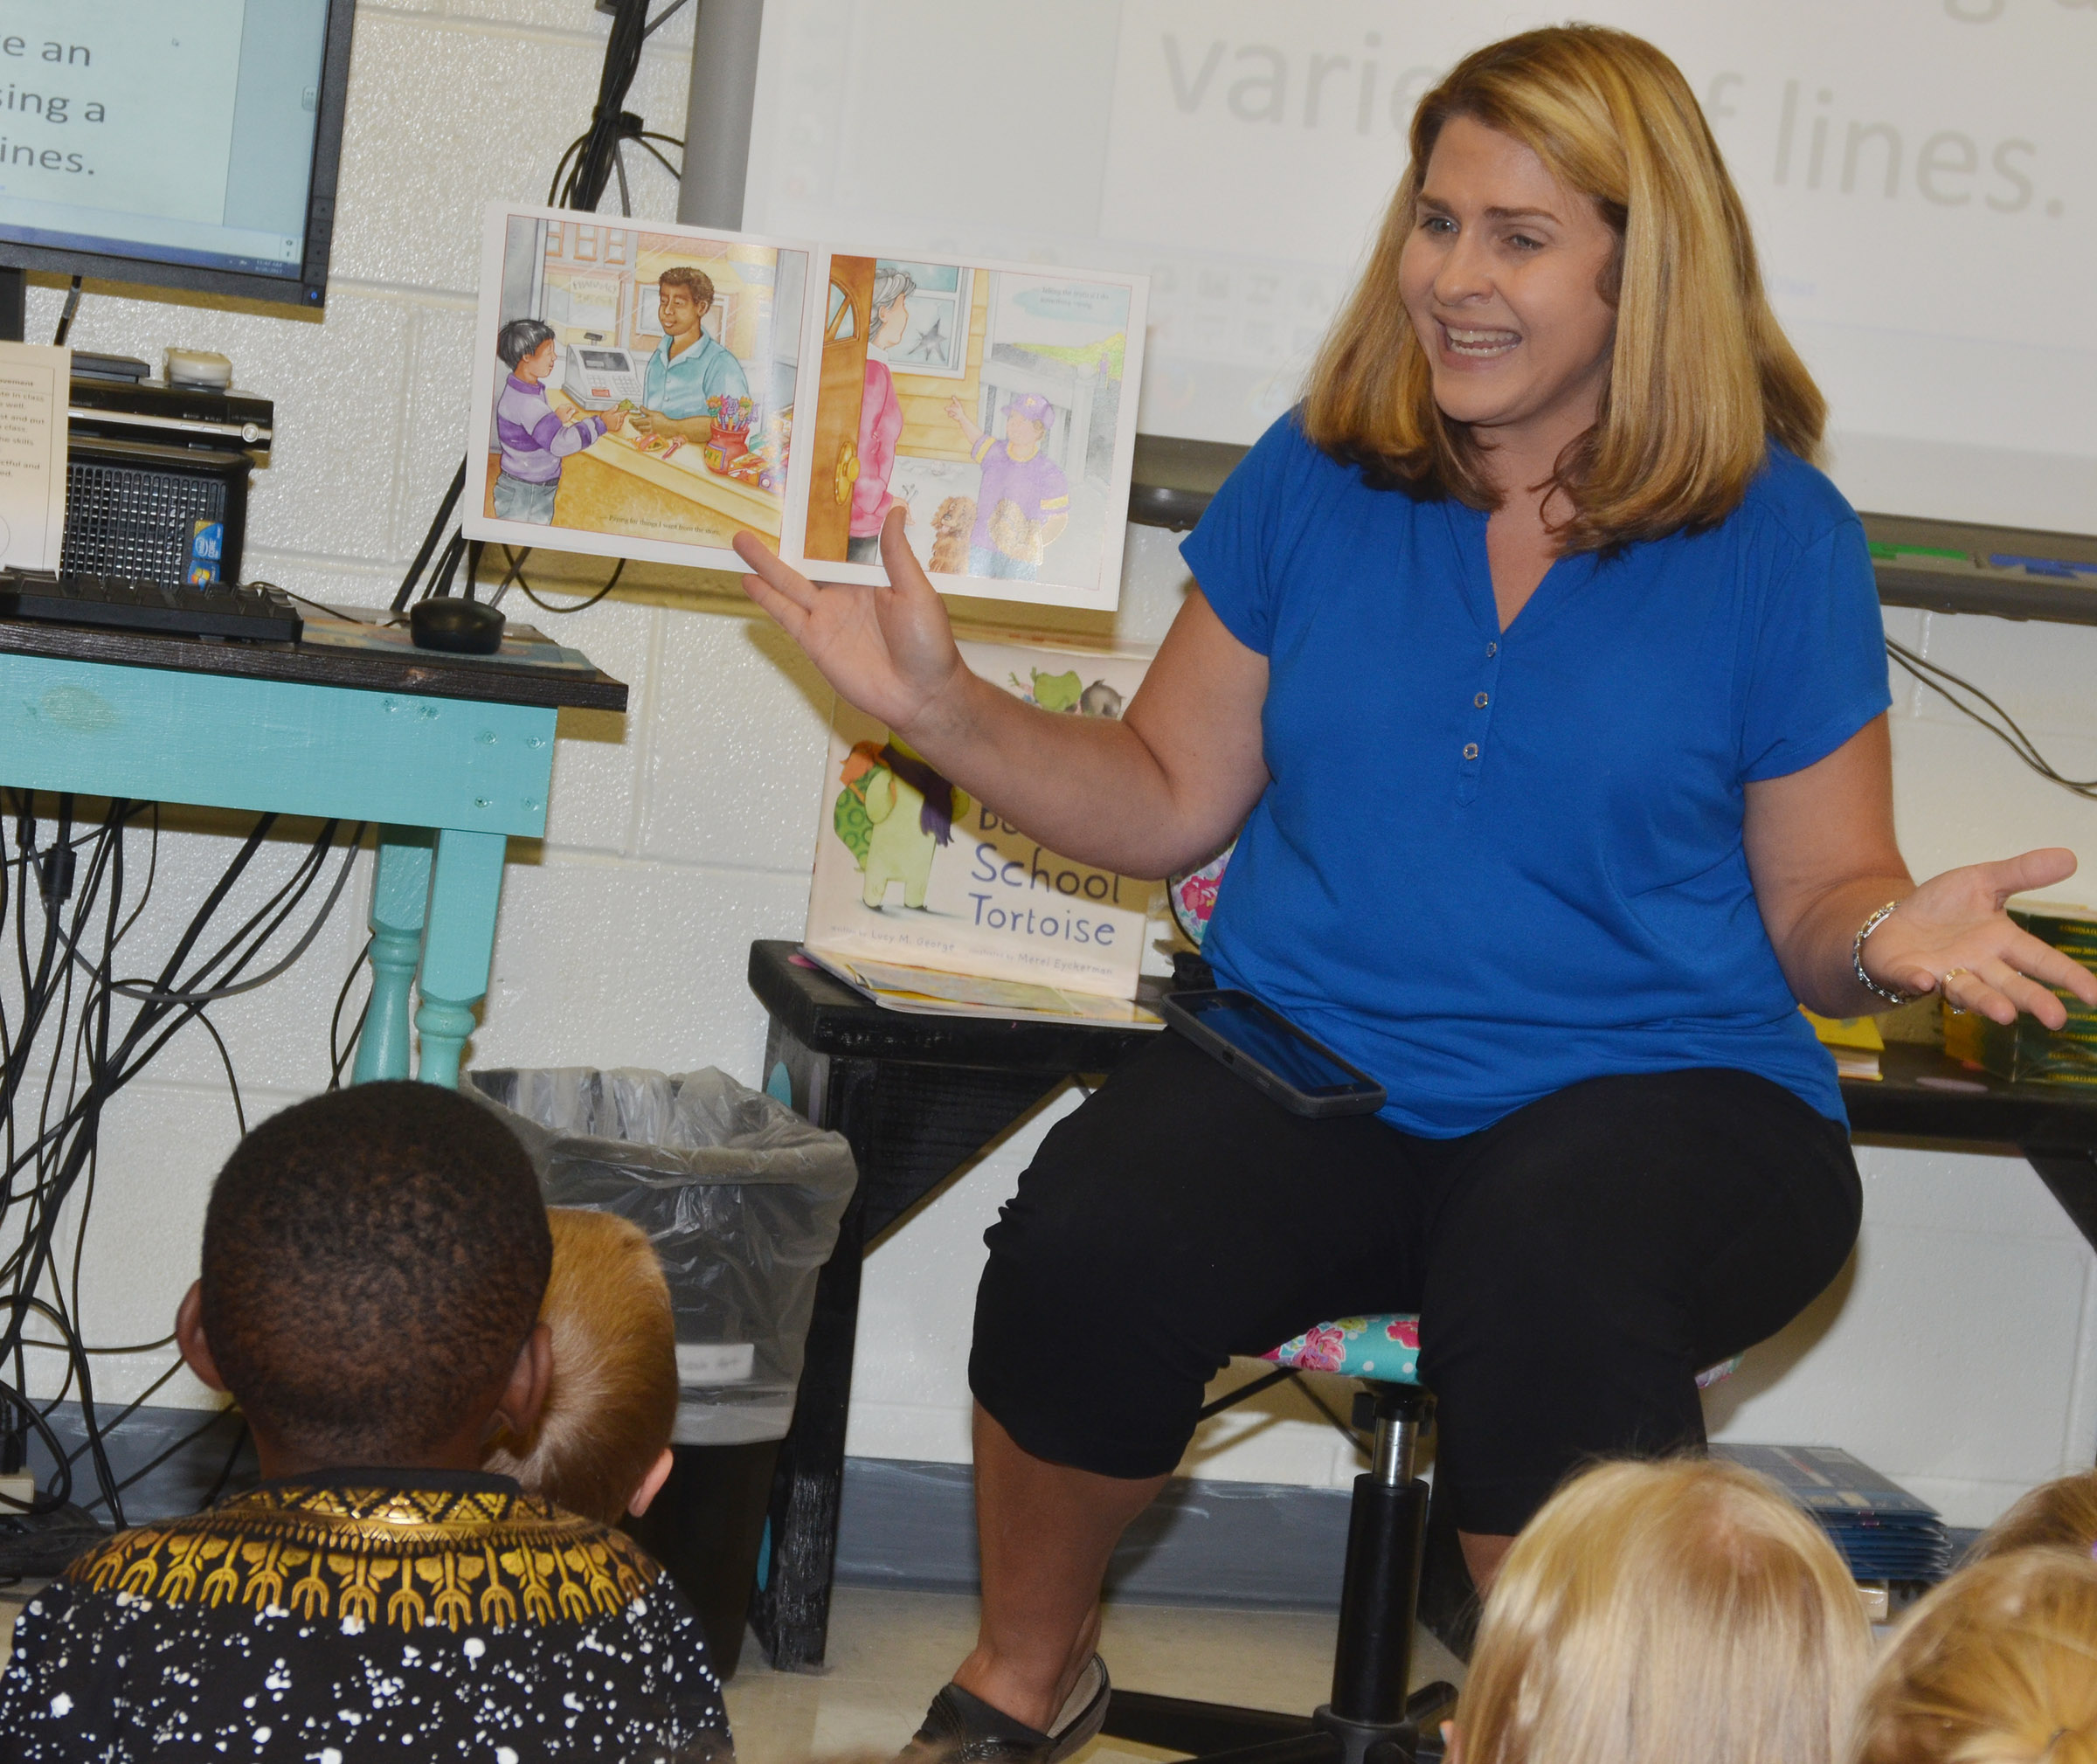 CES Guidance Counselor Sonya Orberson teaches kindergarten students about being kind and respectful.